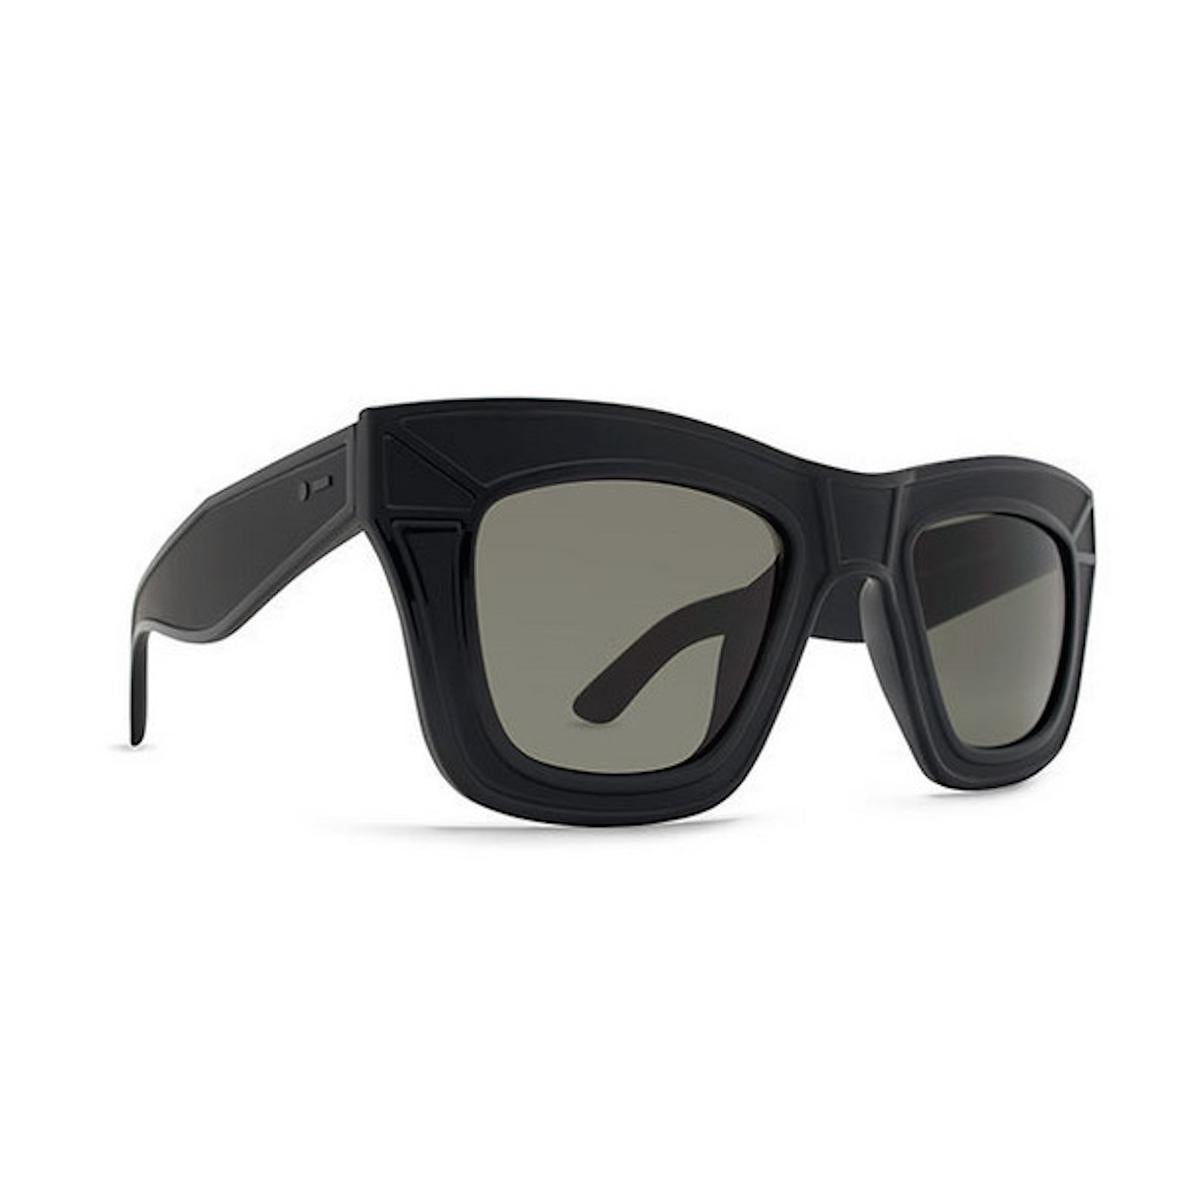 Dot Dash Hacktavist Sunglasses